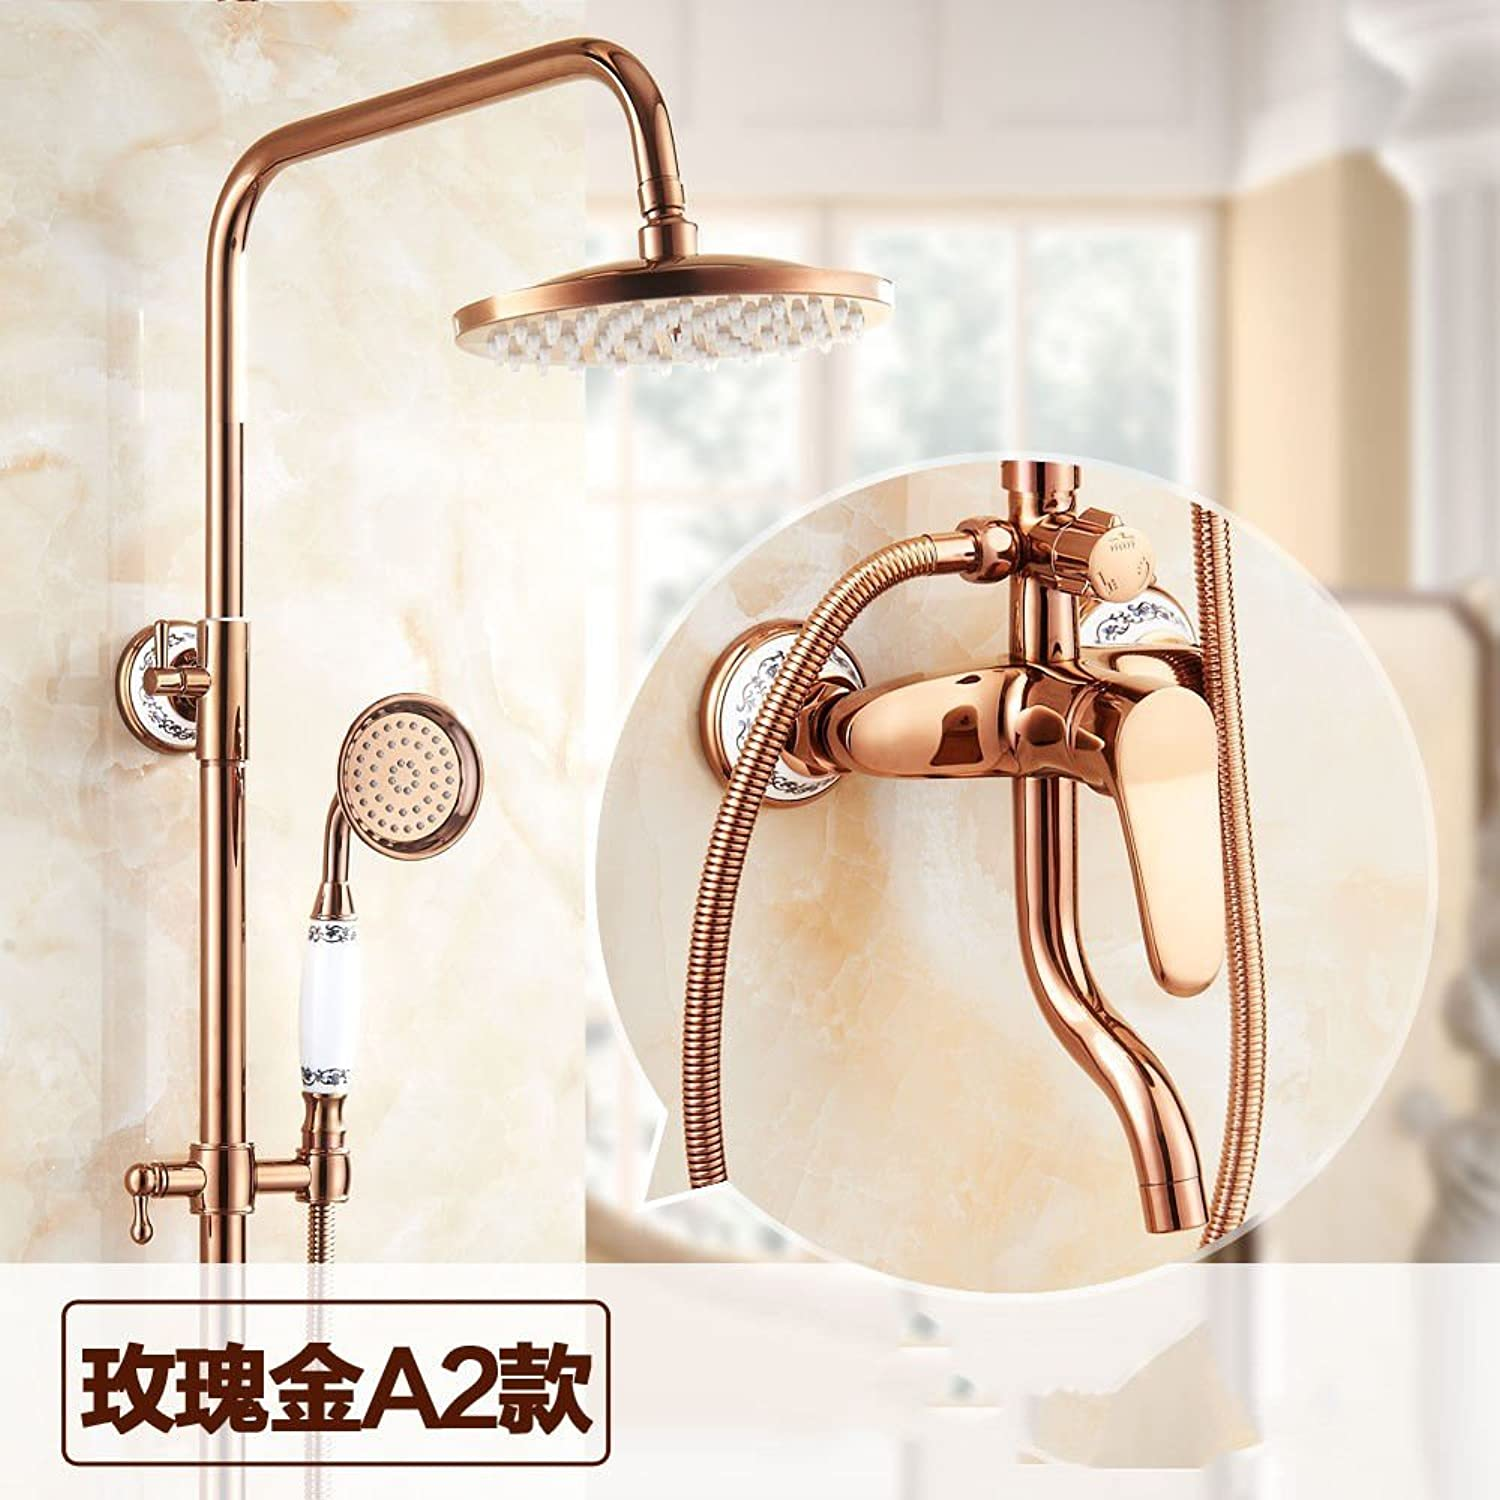 ETERNAL QUALITY Bathroom Sink Basin Tap Brass Mixer Tap Washroom Mixer Faucet pink gold shower full copper cold-hot water tap to redate the sprinkler bath lift shower B K